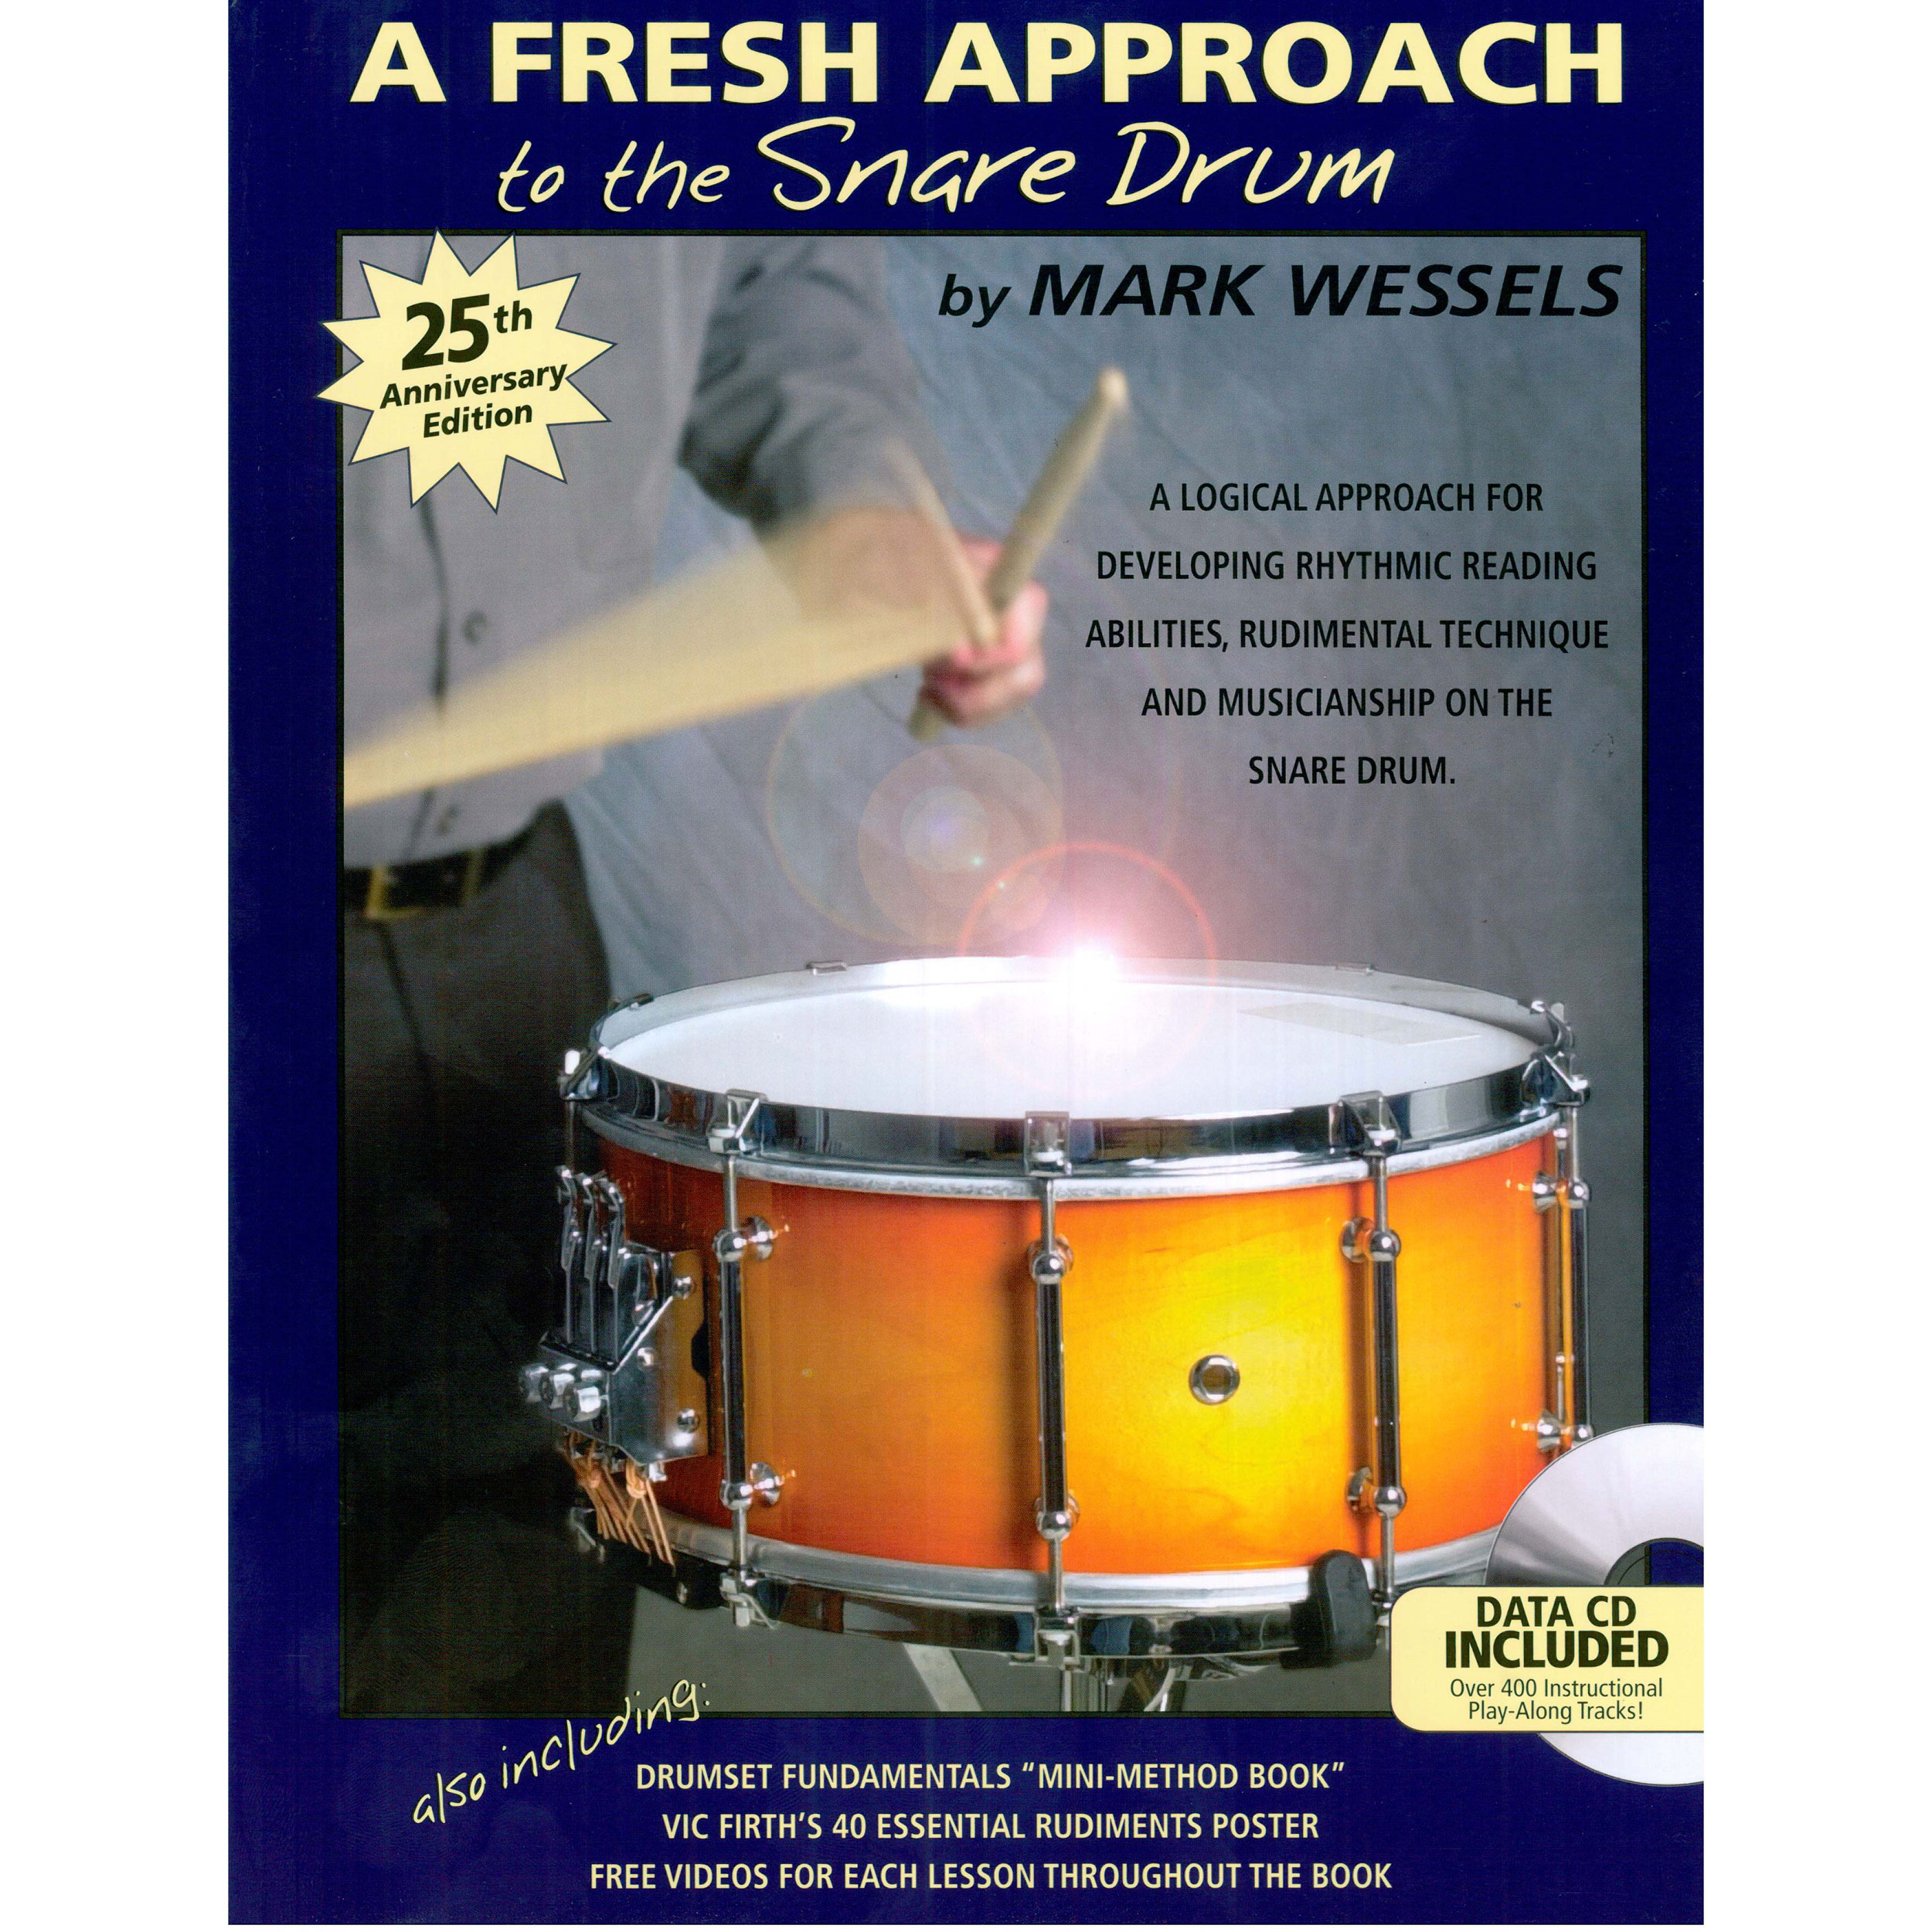 A Fresh Approach to the Snare Drum by Mark Wessels